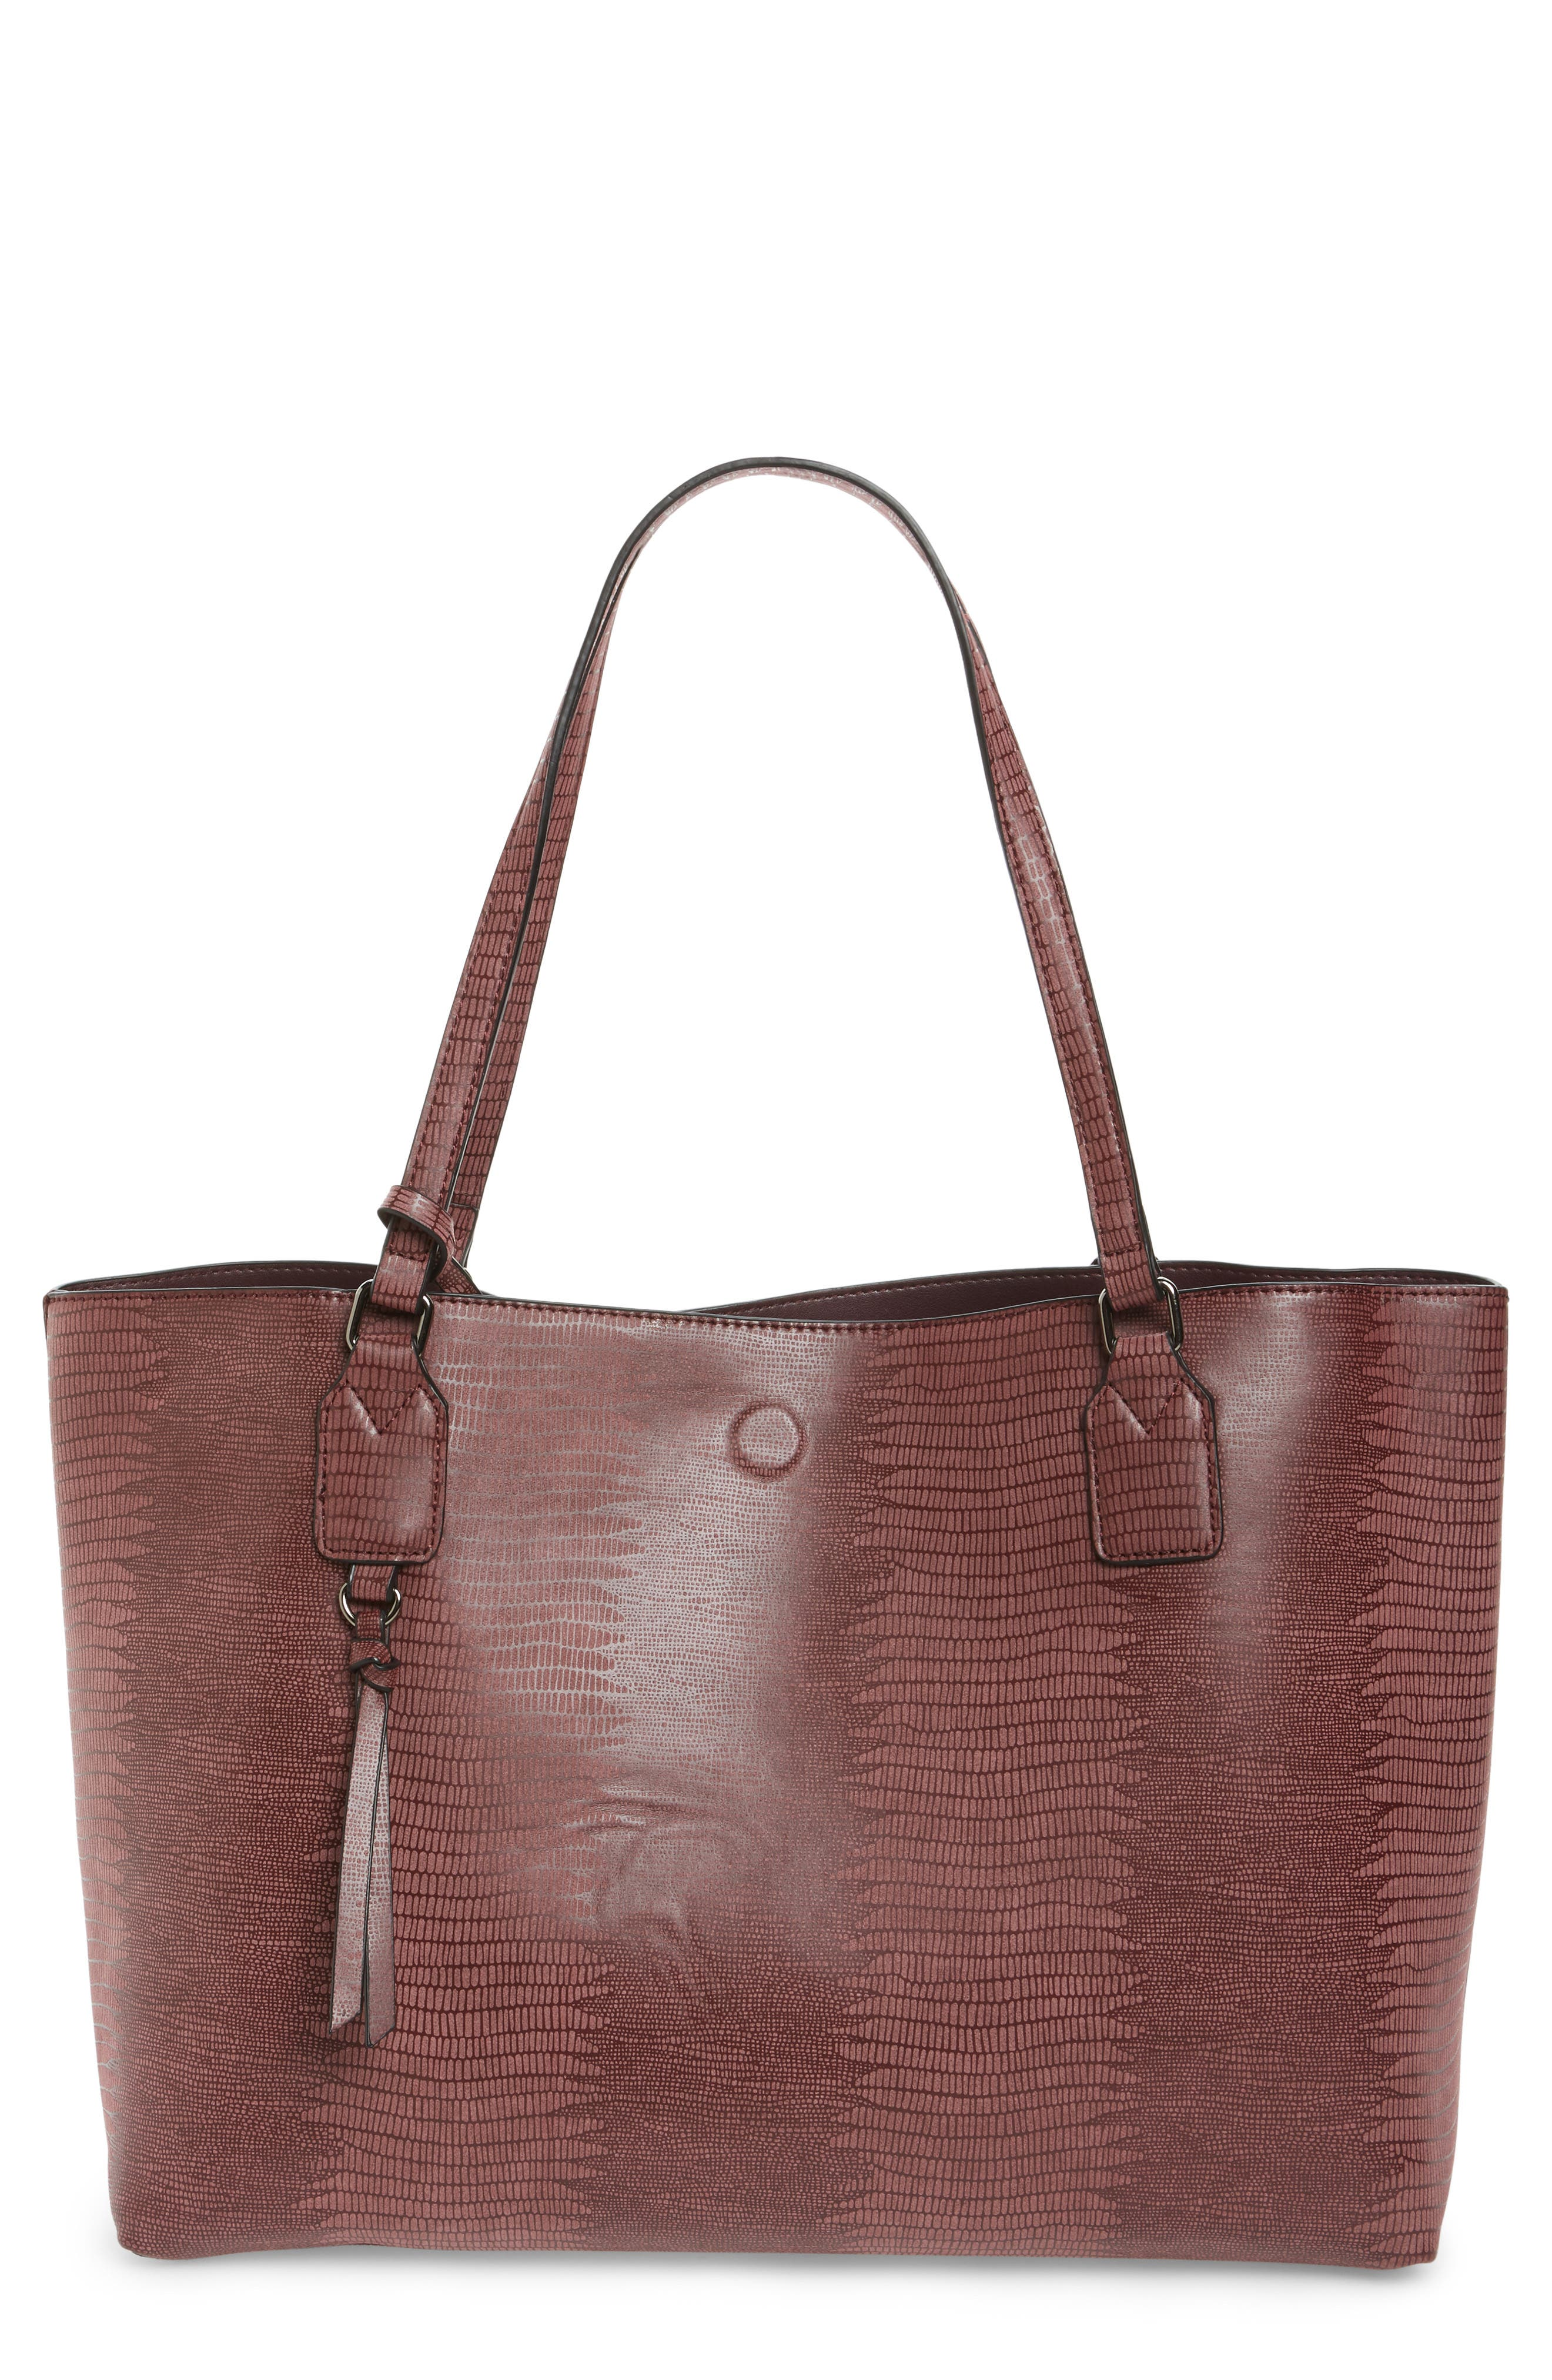 Main Image - Street Level Snake Embossed Faux Leather Tote